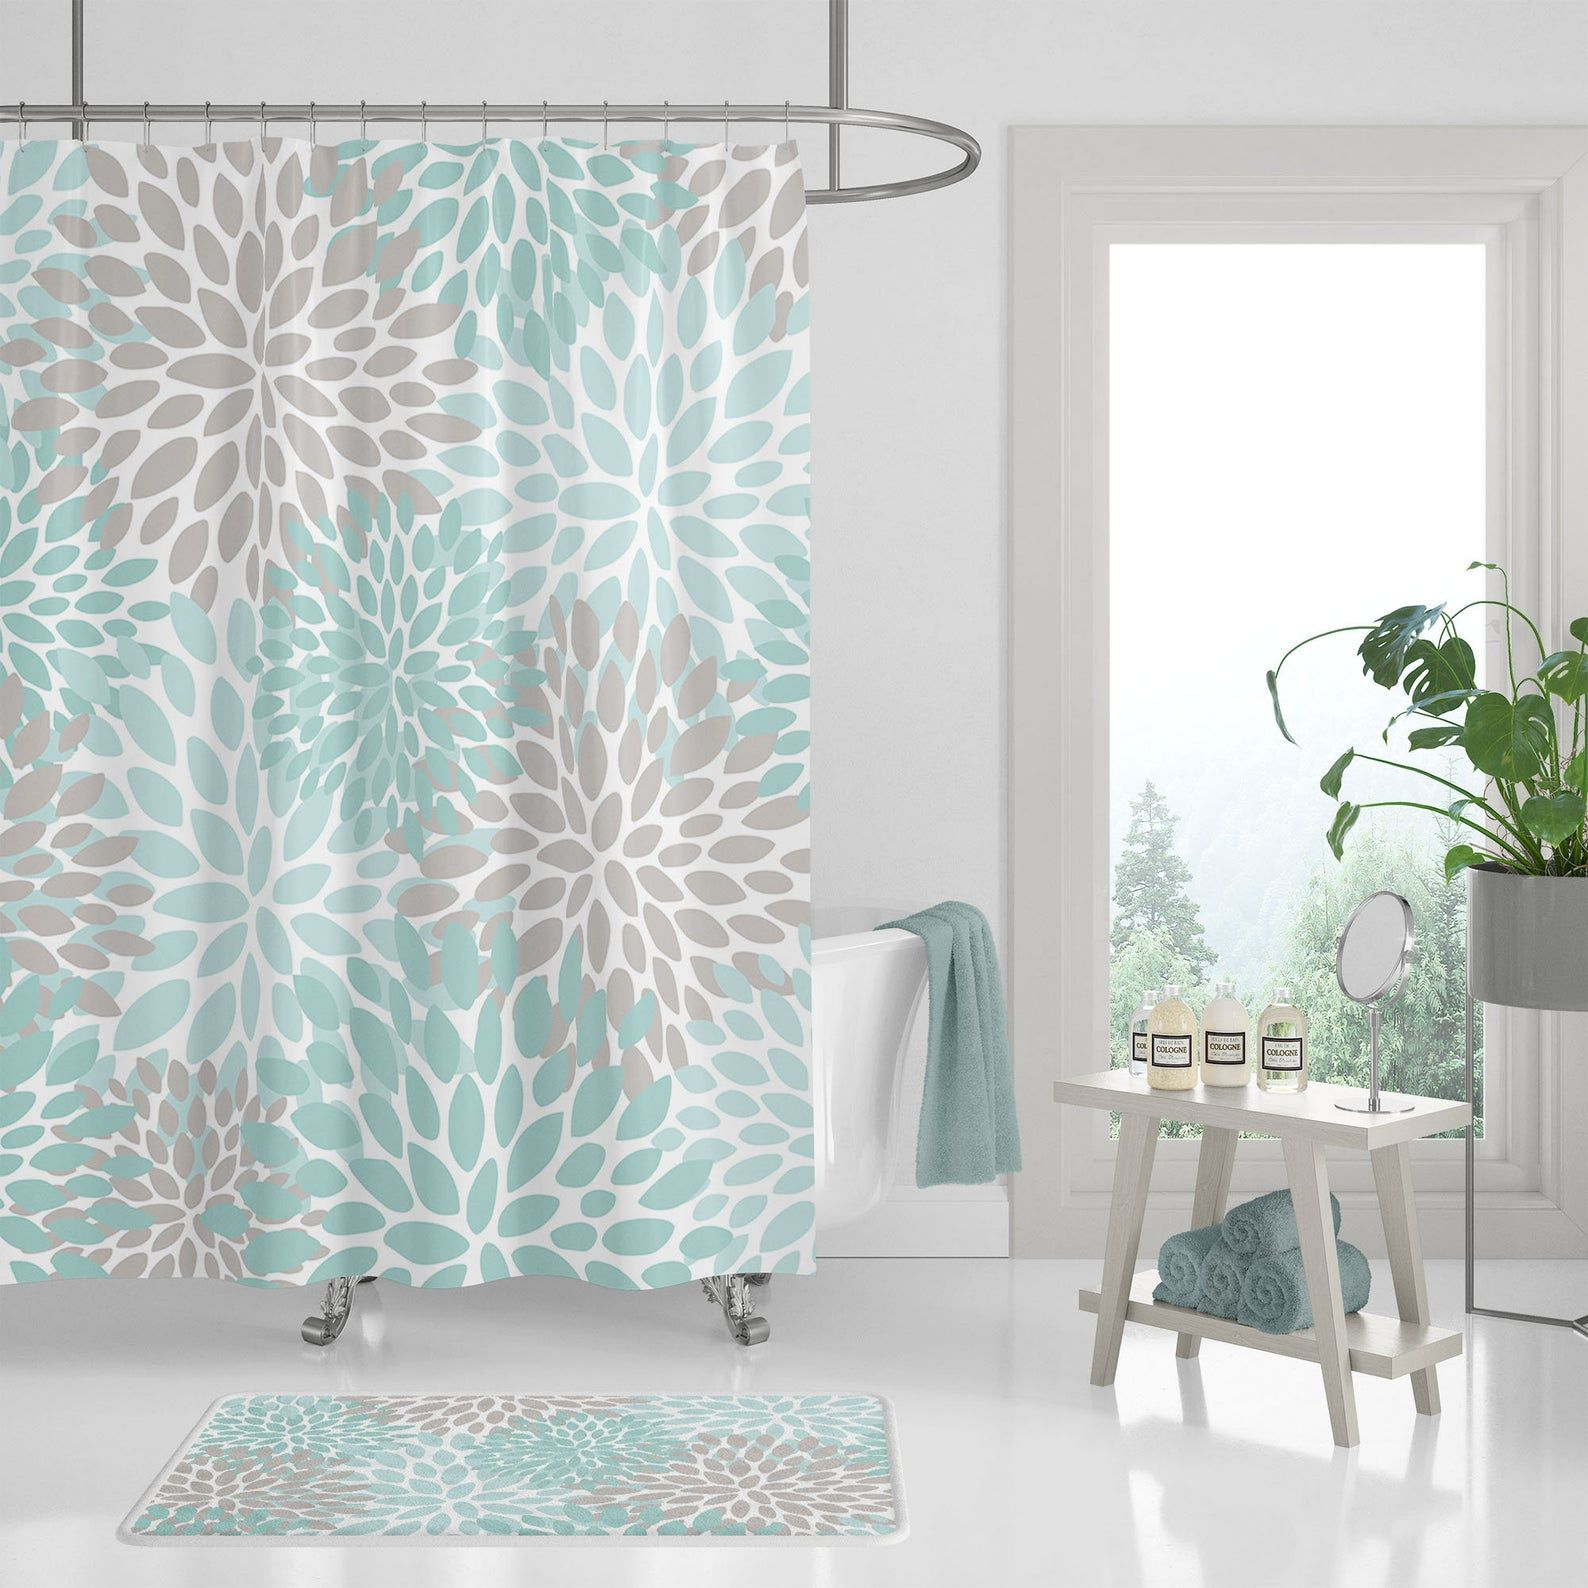 Floral Shower Curtain Teal Aqua Gray White | Etsy in 2020 ...